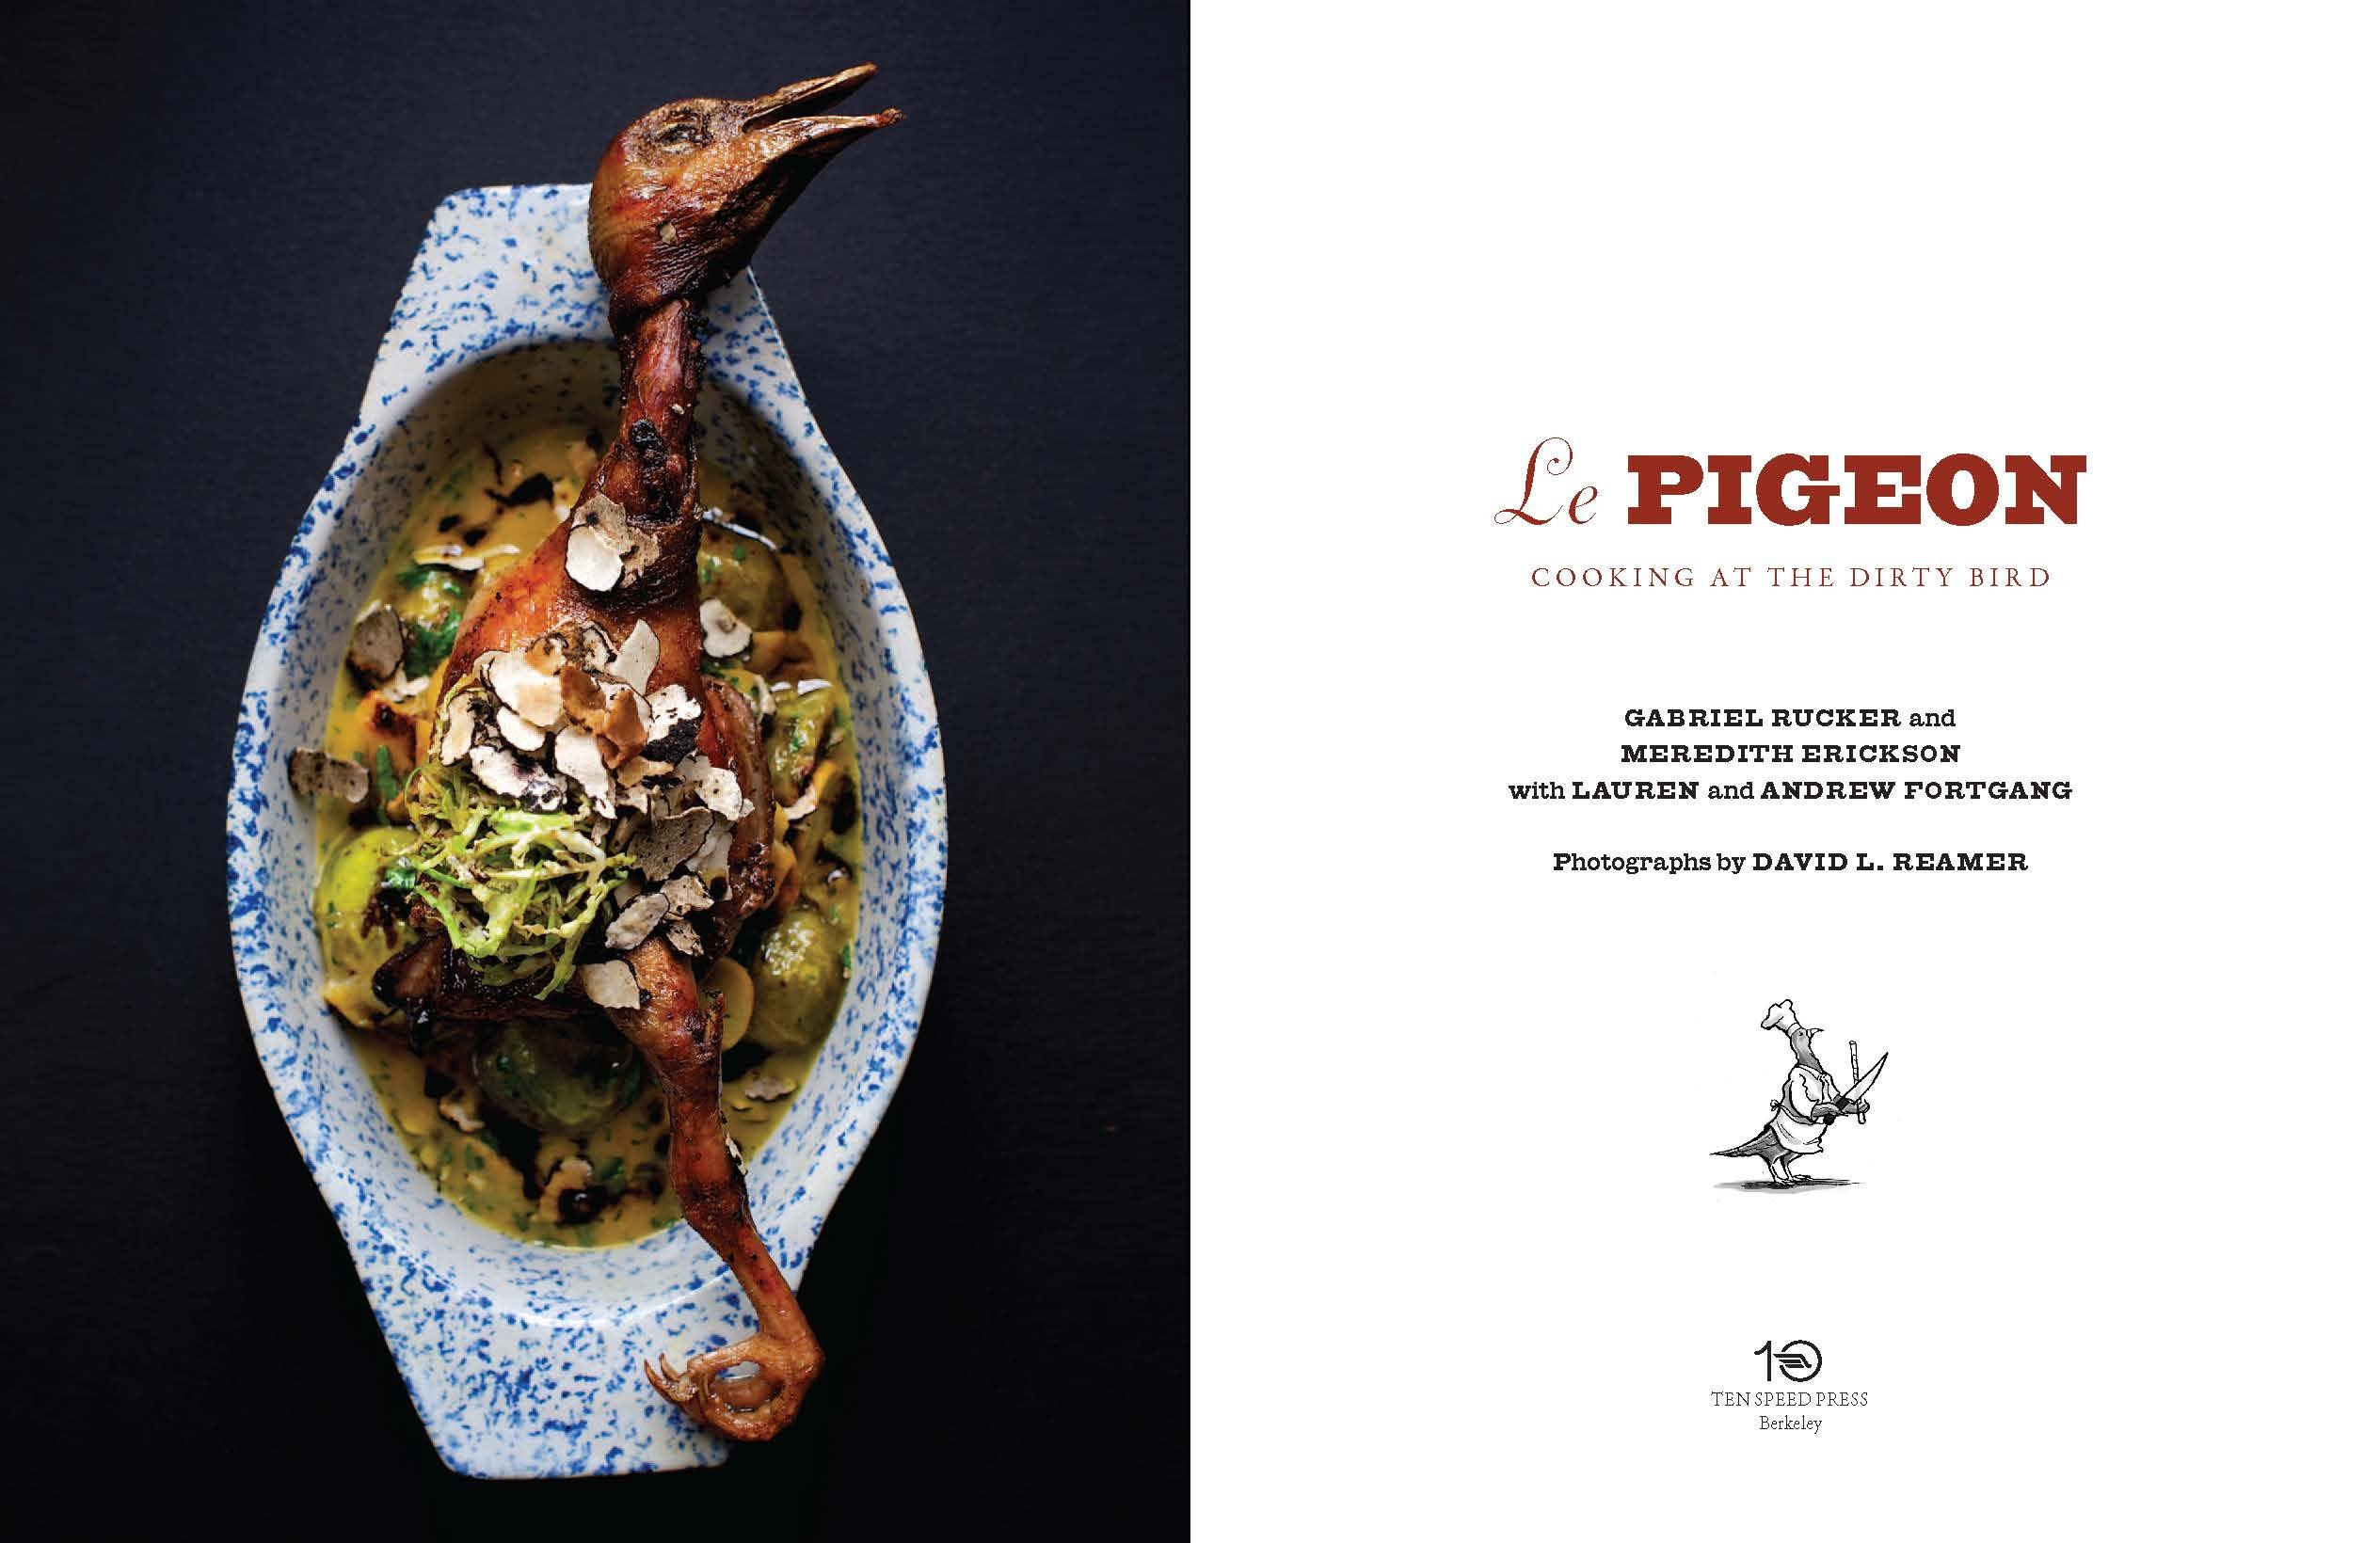 Le pigeon cooking at the dirty bird gabriel rucker meredith le pigeon cooking at the dirty bird gabriel rucker meredith erickson lauren fortgang andrew fortgang tom colicchio 9781607744443 amazon books forumfinder Choice Image